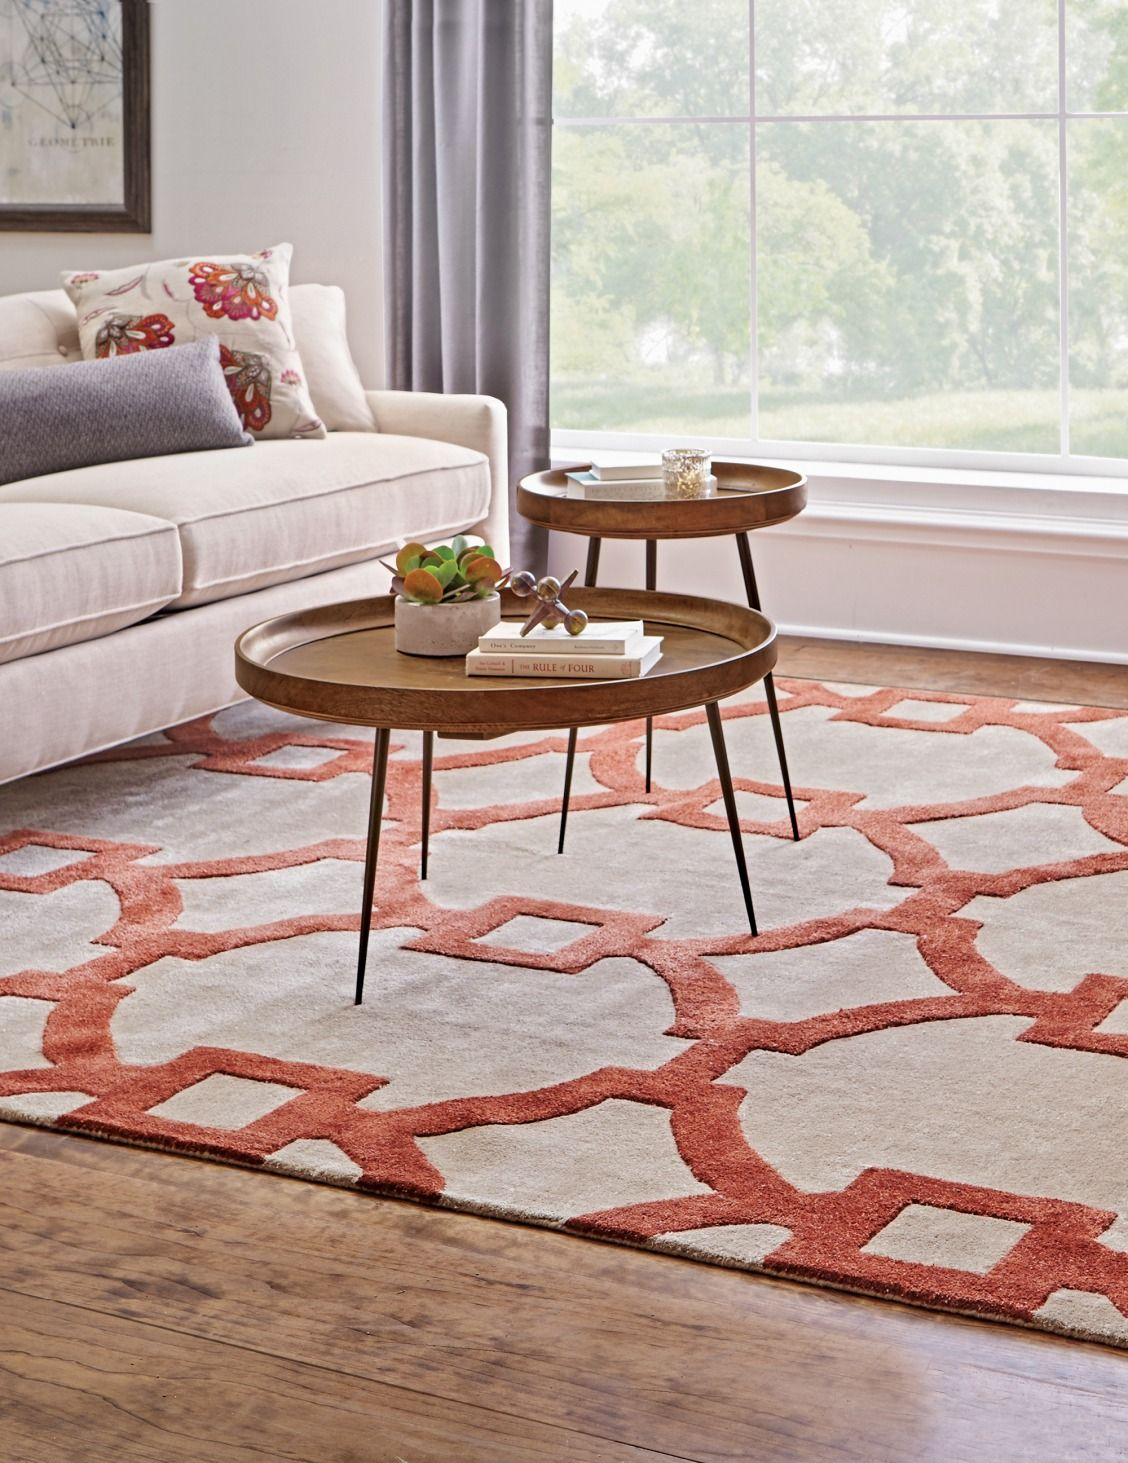 Make Your Living Room More Comfortable With Our Sawyer Area Rug